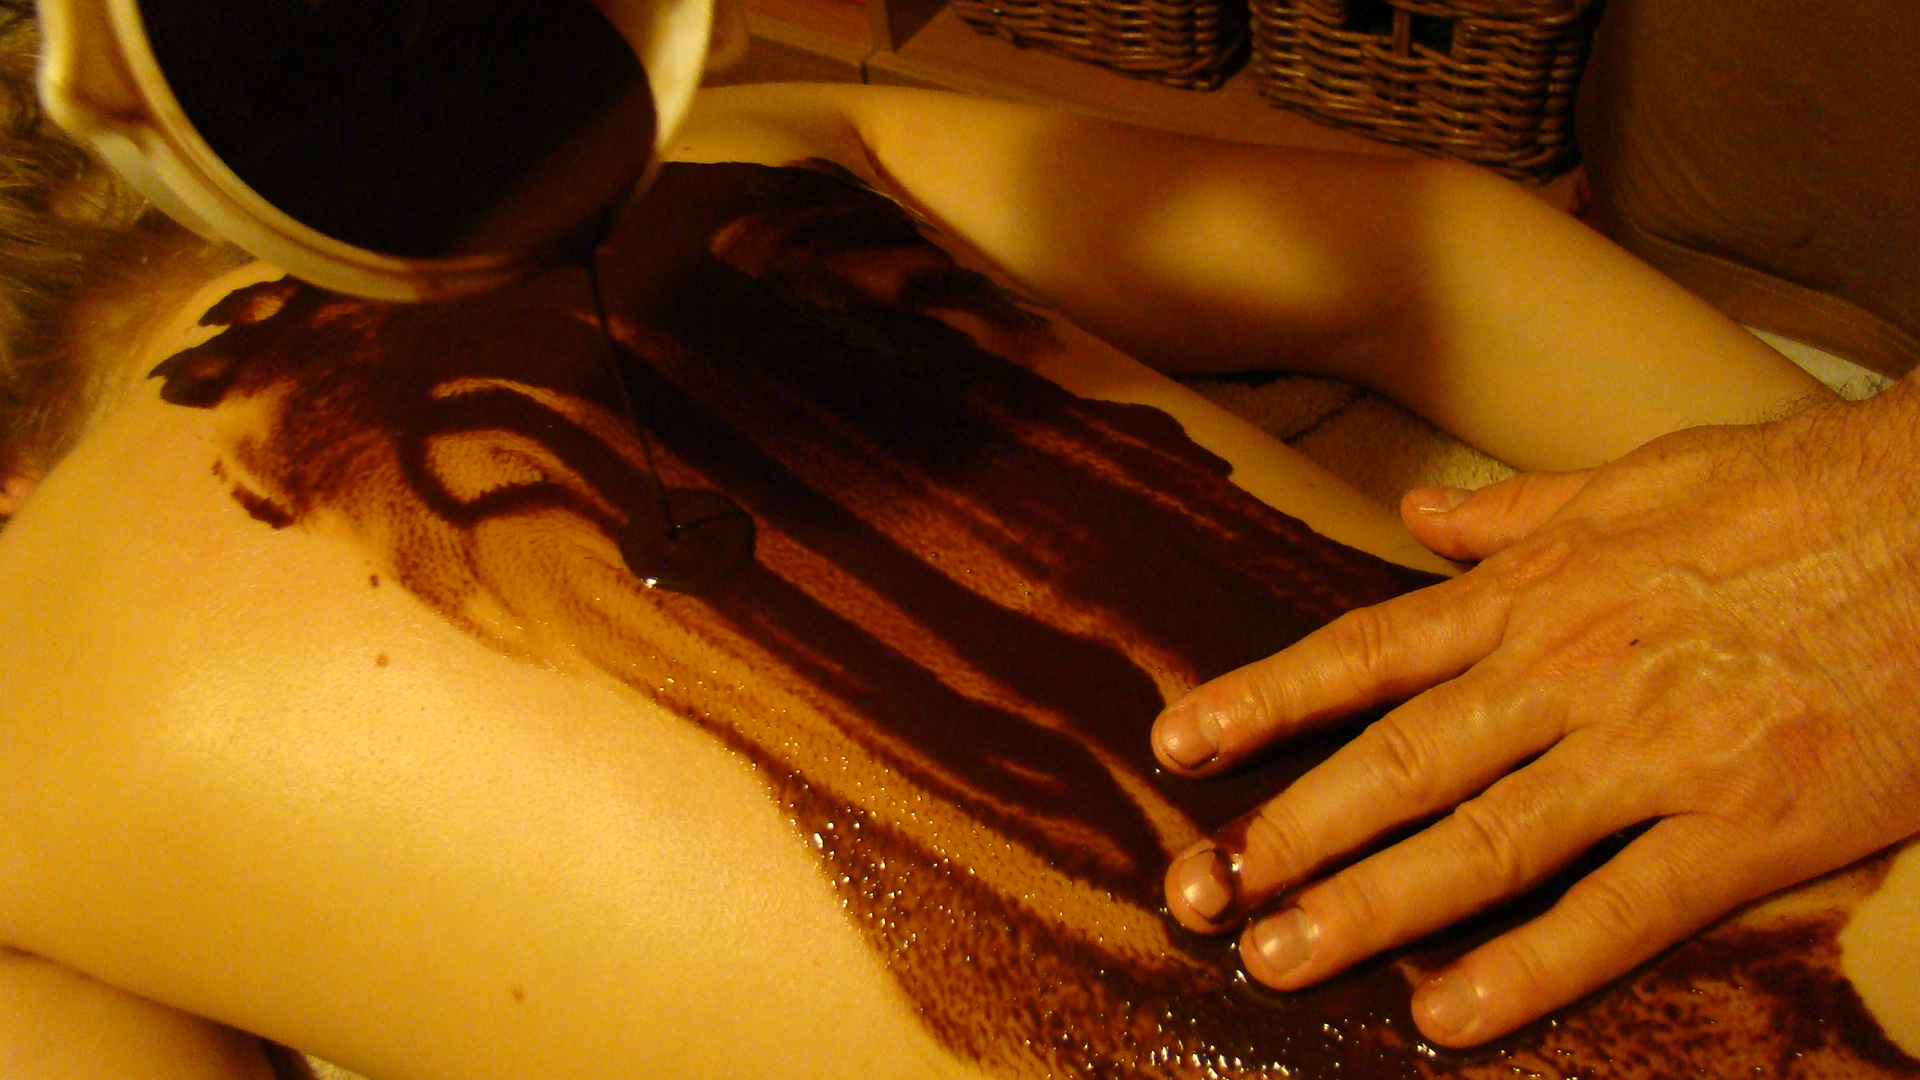 Chocolate massage